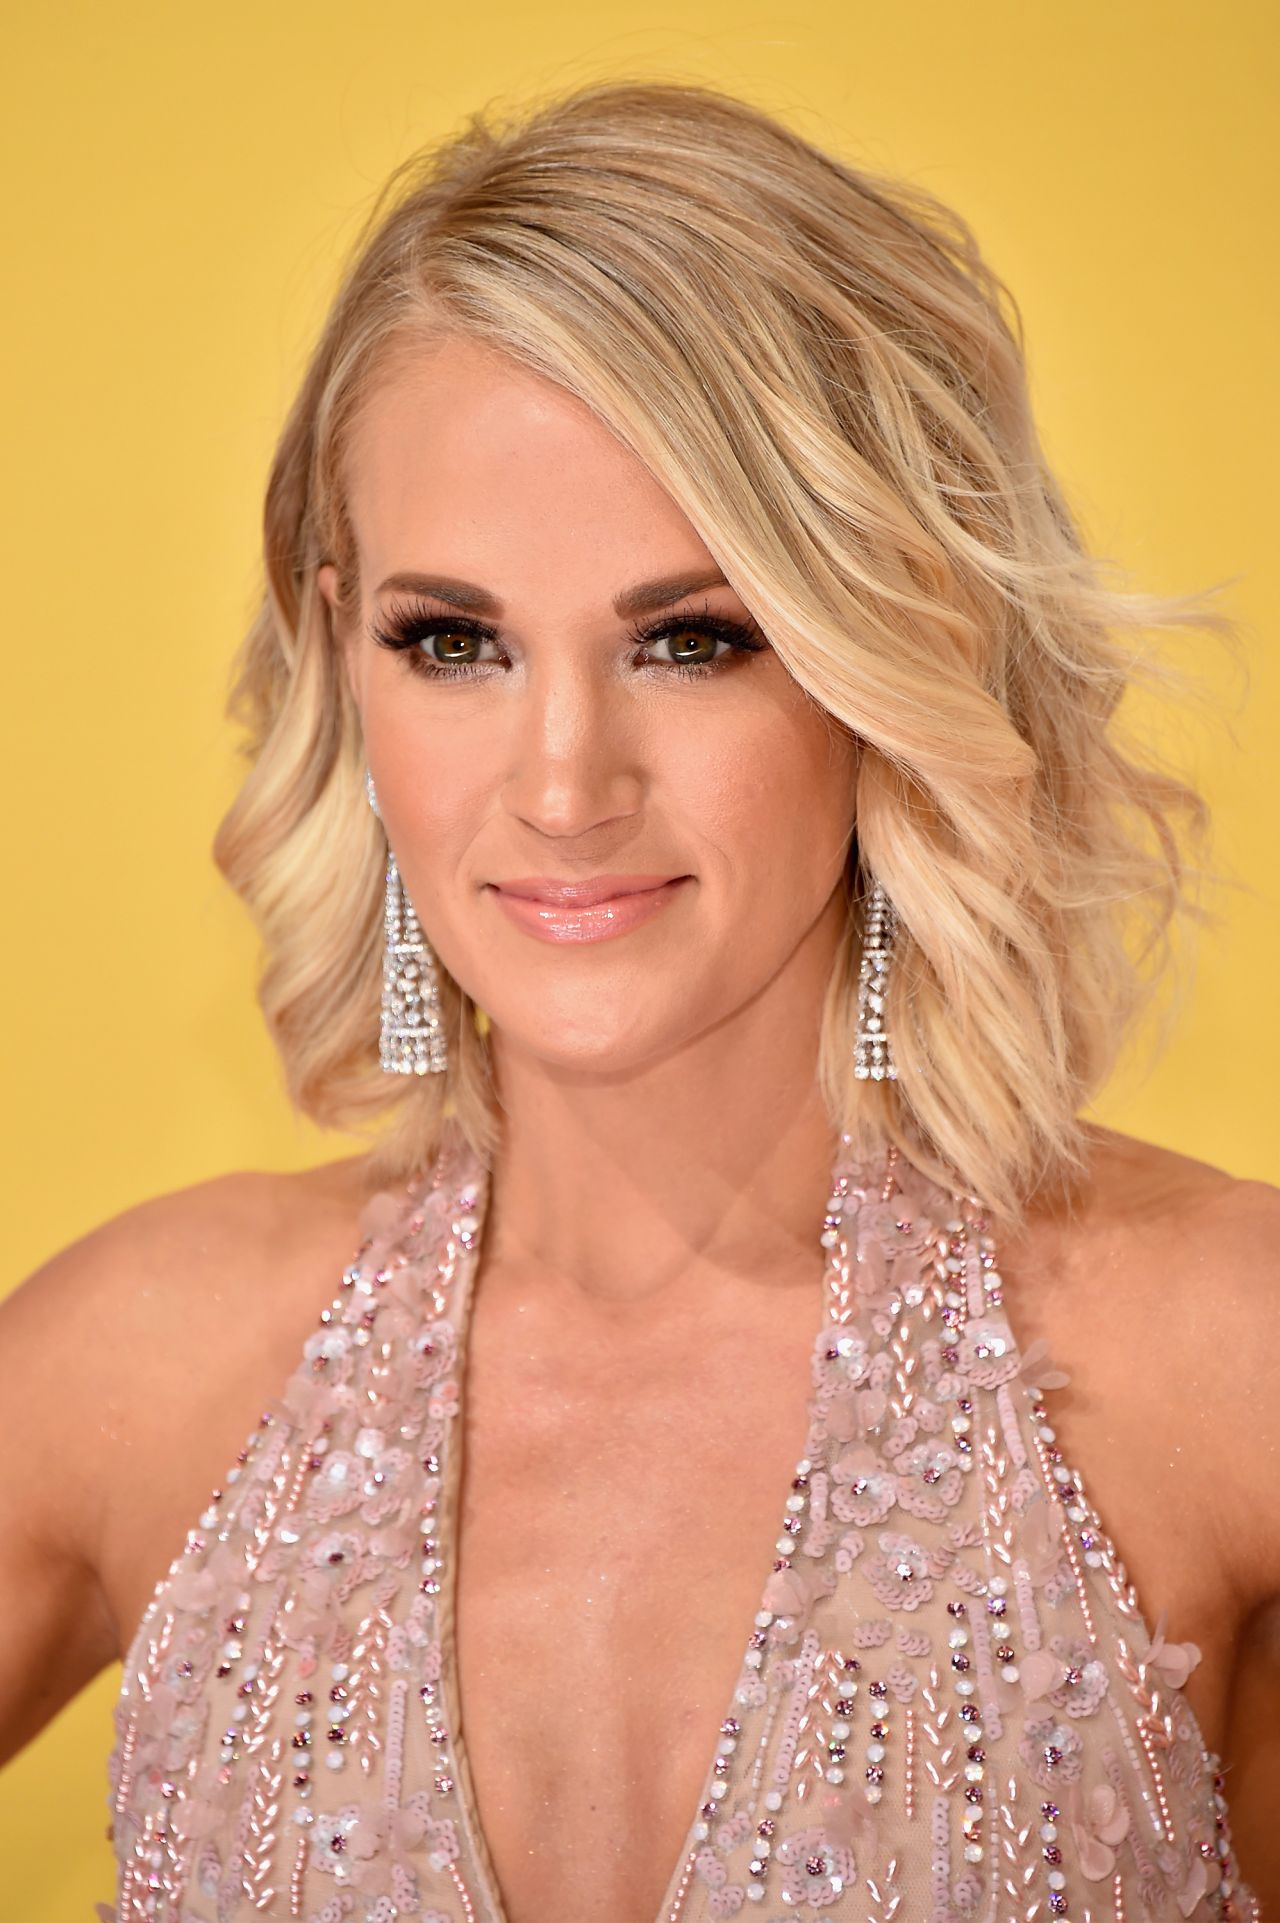 Carrie Underwood 50th Annual Cma Awards Nashville 112 2016 630243